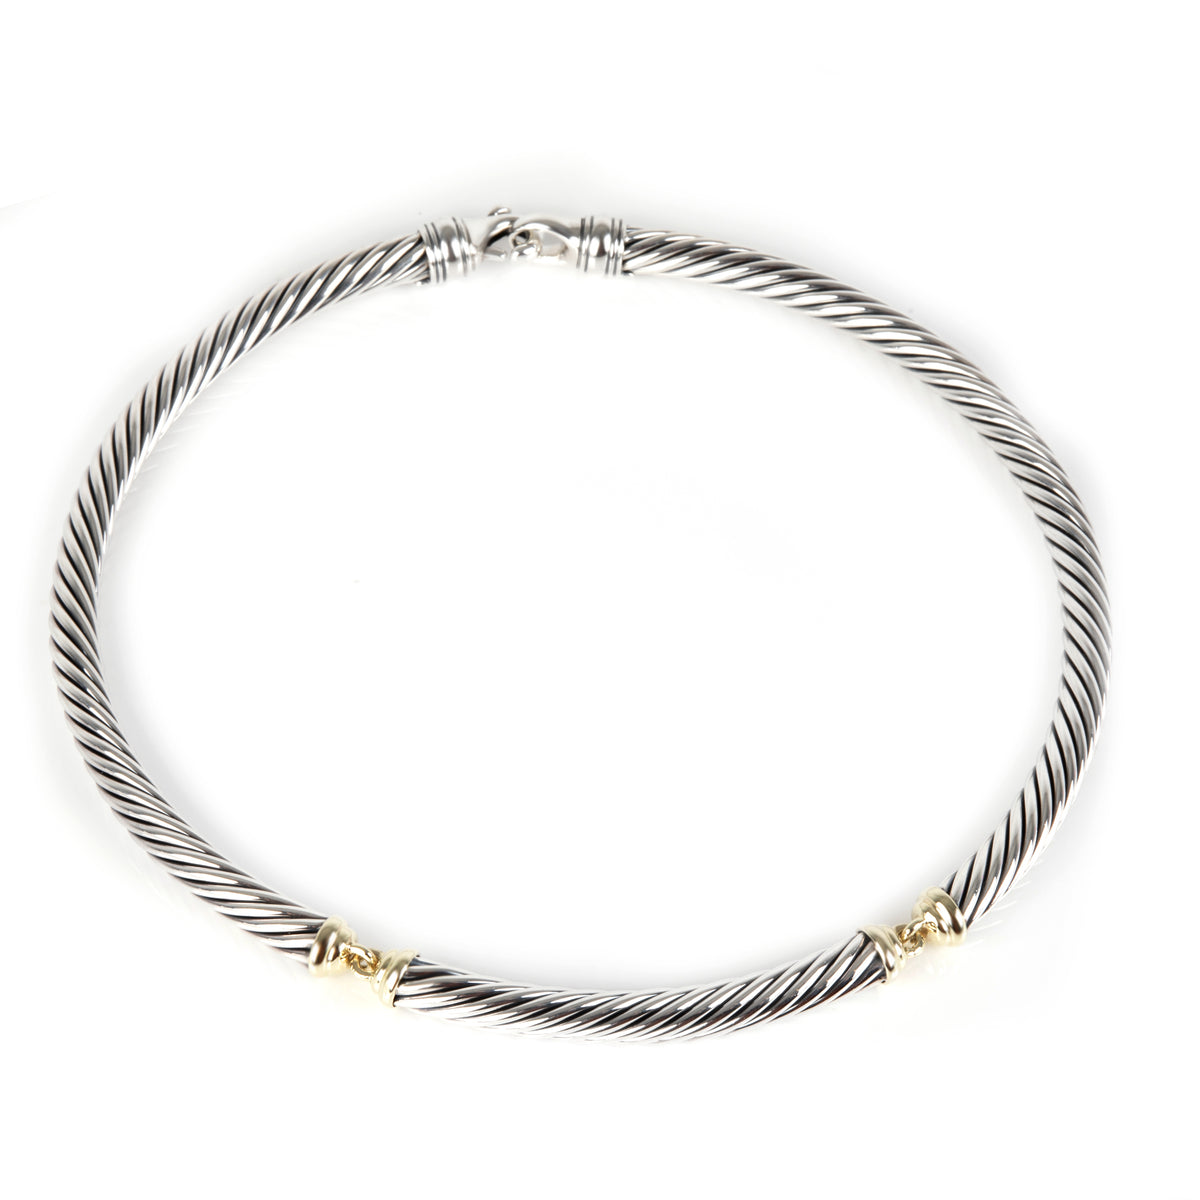 David Yurman Metro Cable Choker Necklace in 14K Yellow Gold/Sterling Silver